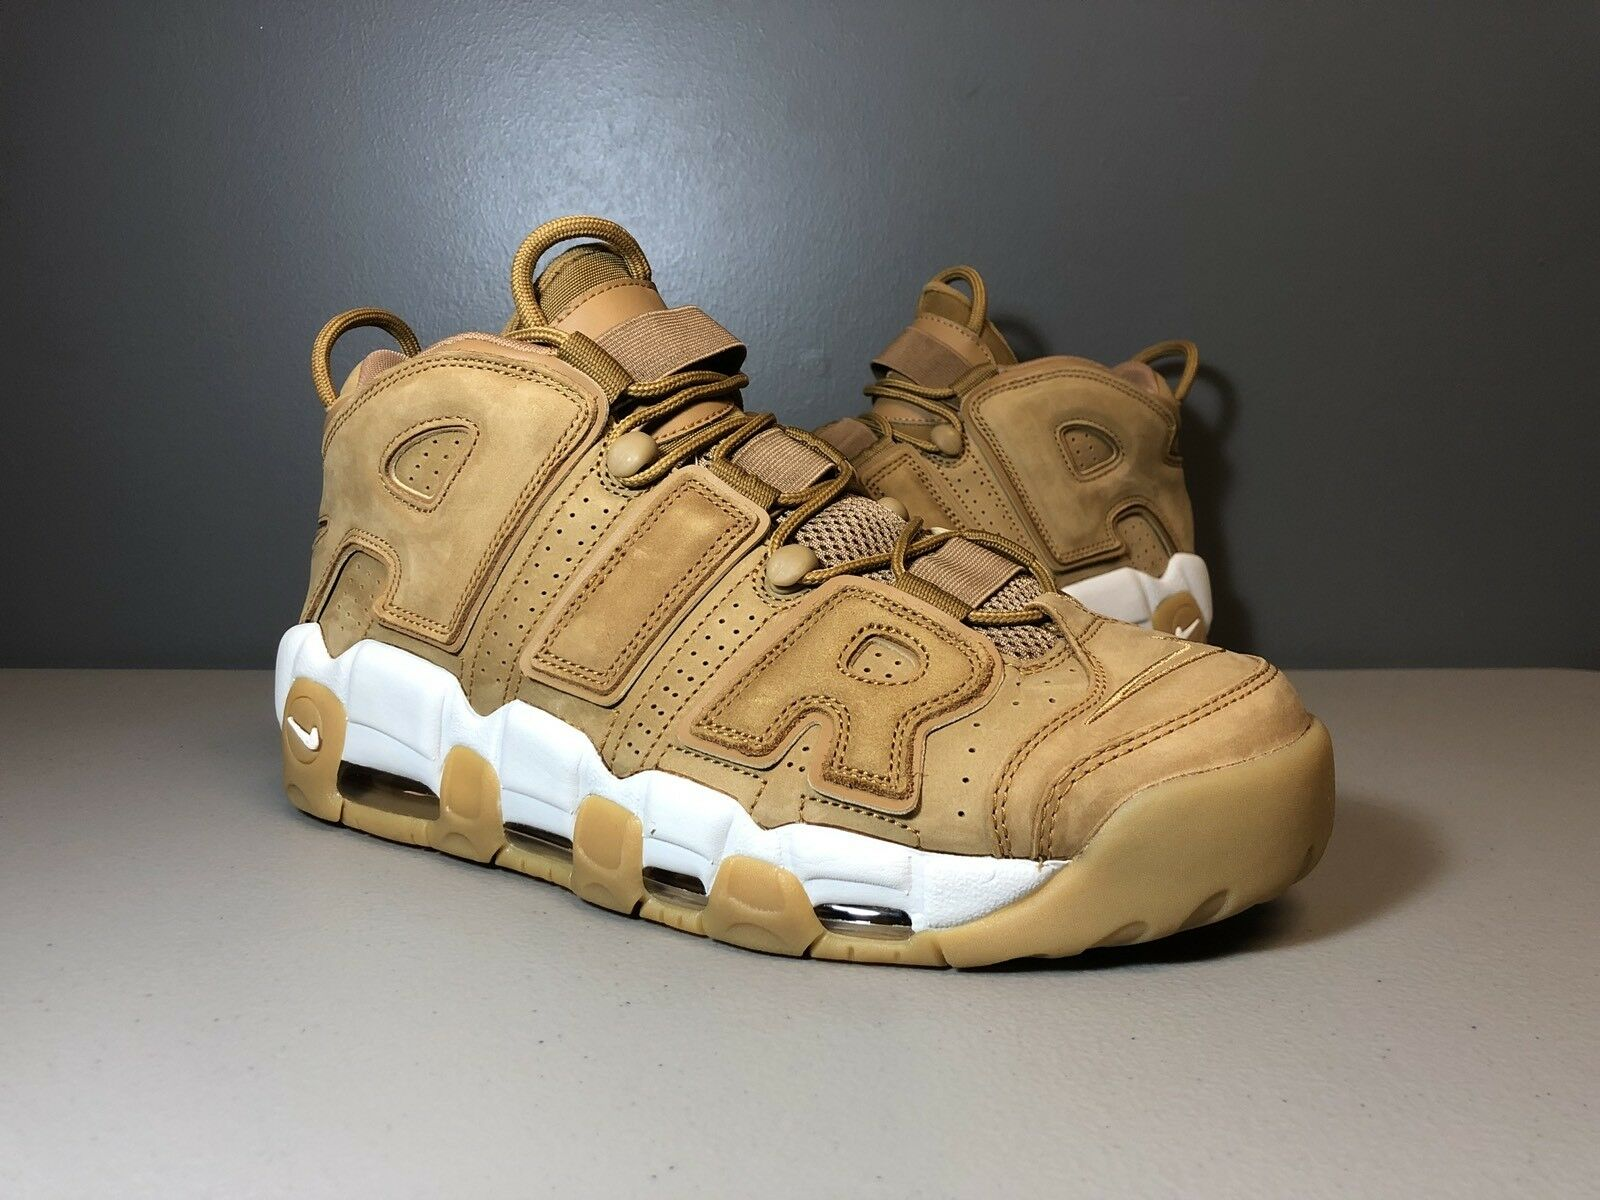 NIKE AIR MORE UPTEMPO 96 PRM WHEAT FLAX AA4060 2018 SIZE 12 Great discount